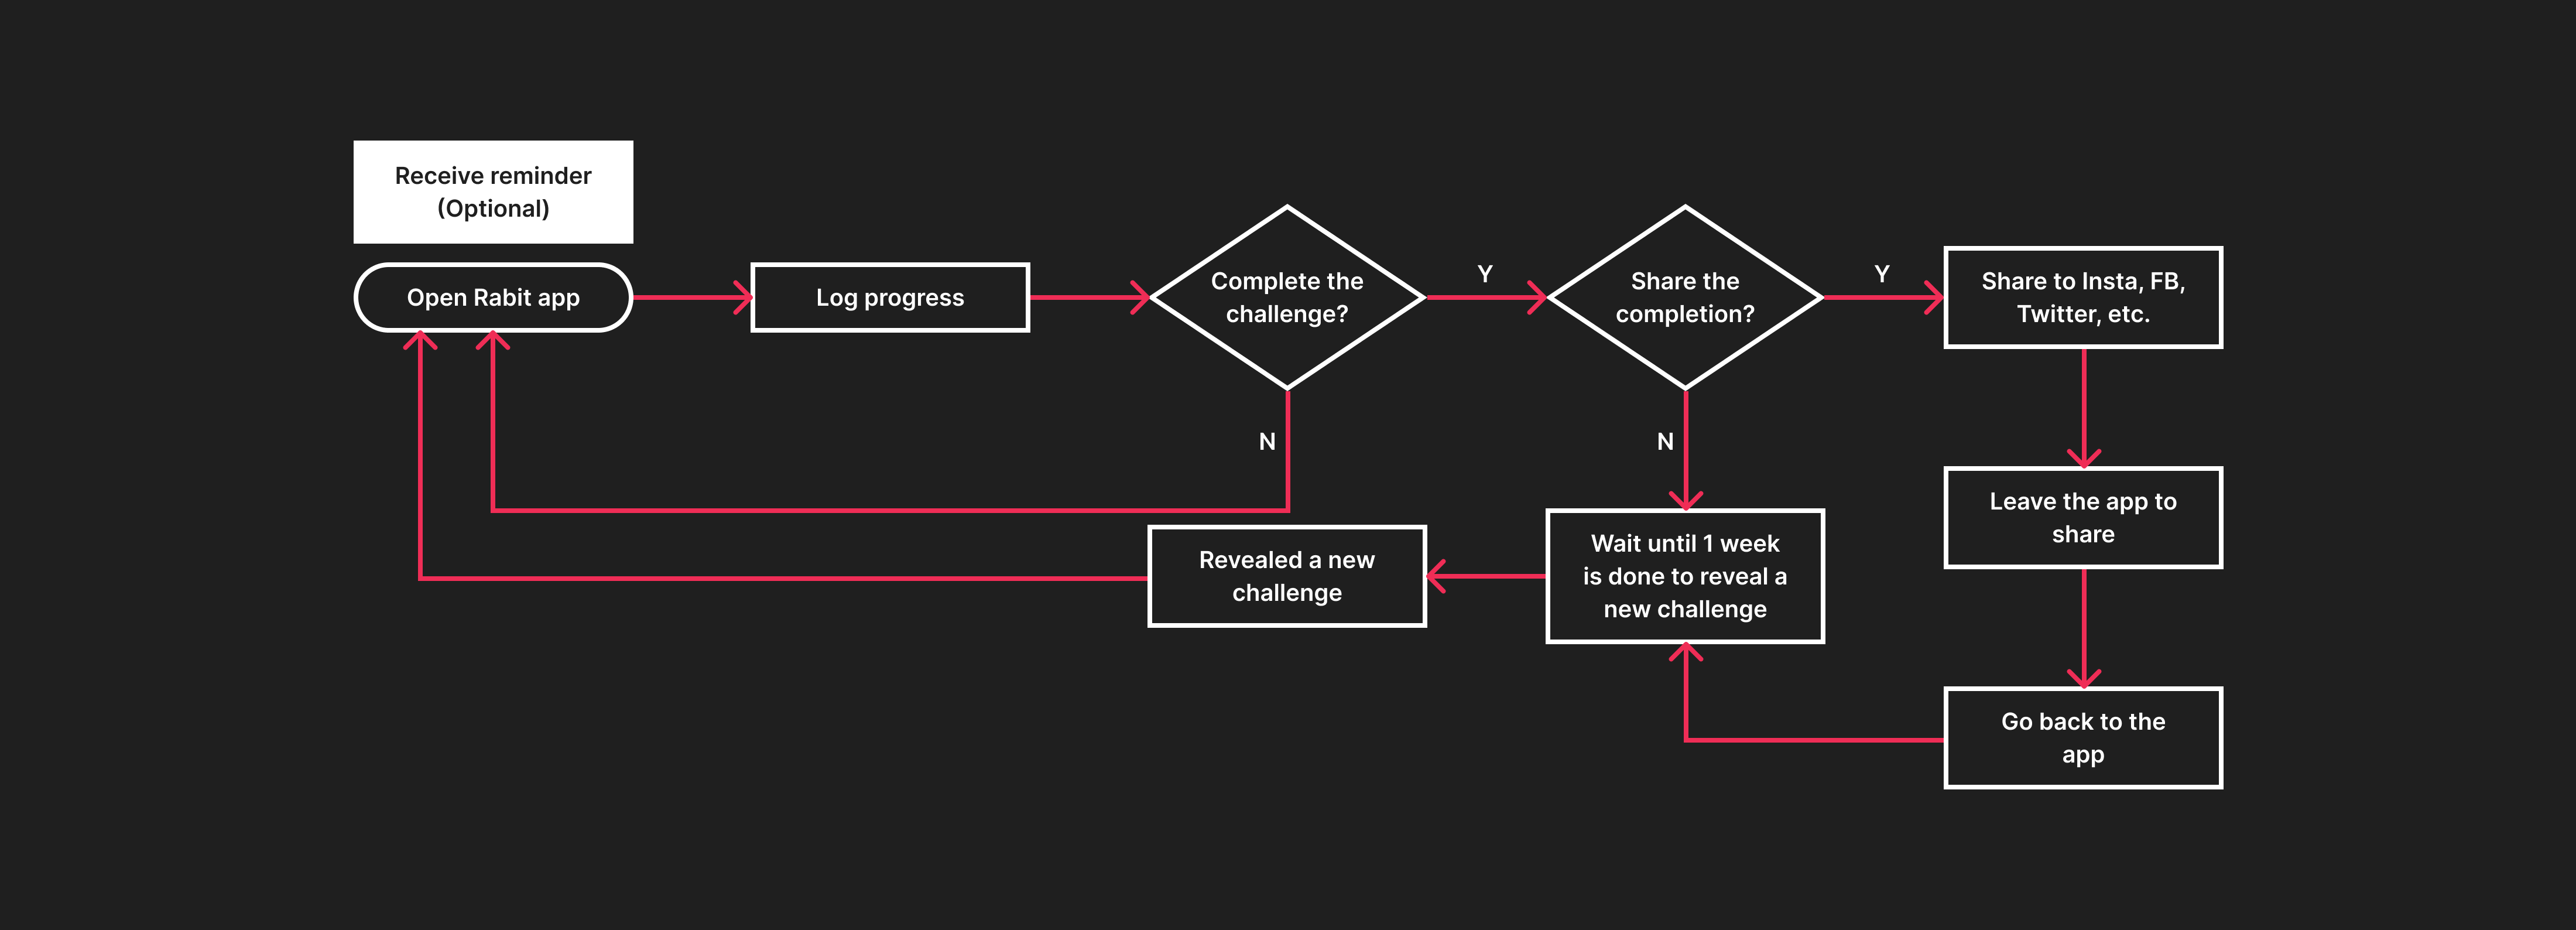 Rabit user flow for 1 month use.